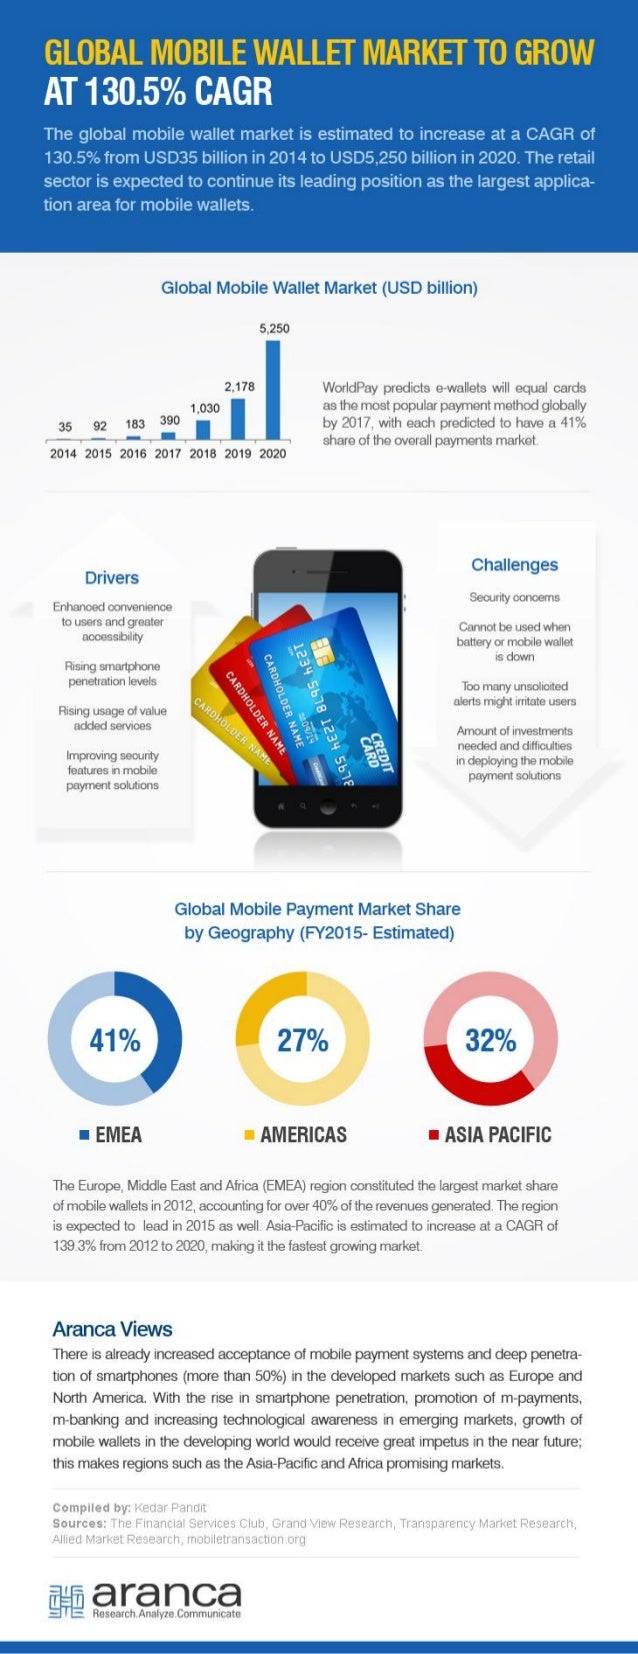 Global Mobile Wallet Market Trends, Applications, Analysis, Growth, and Forecast to 2027